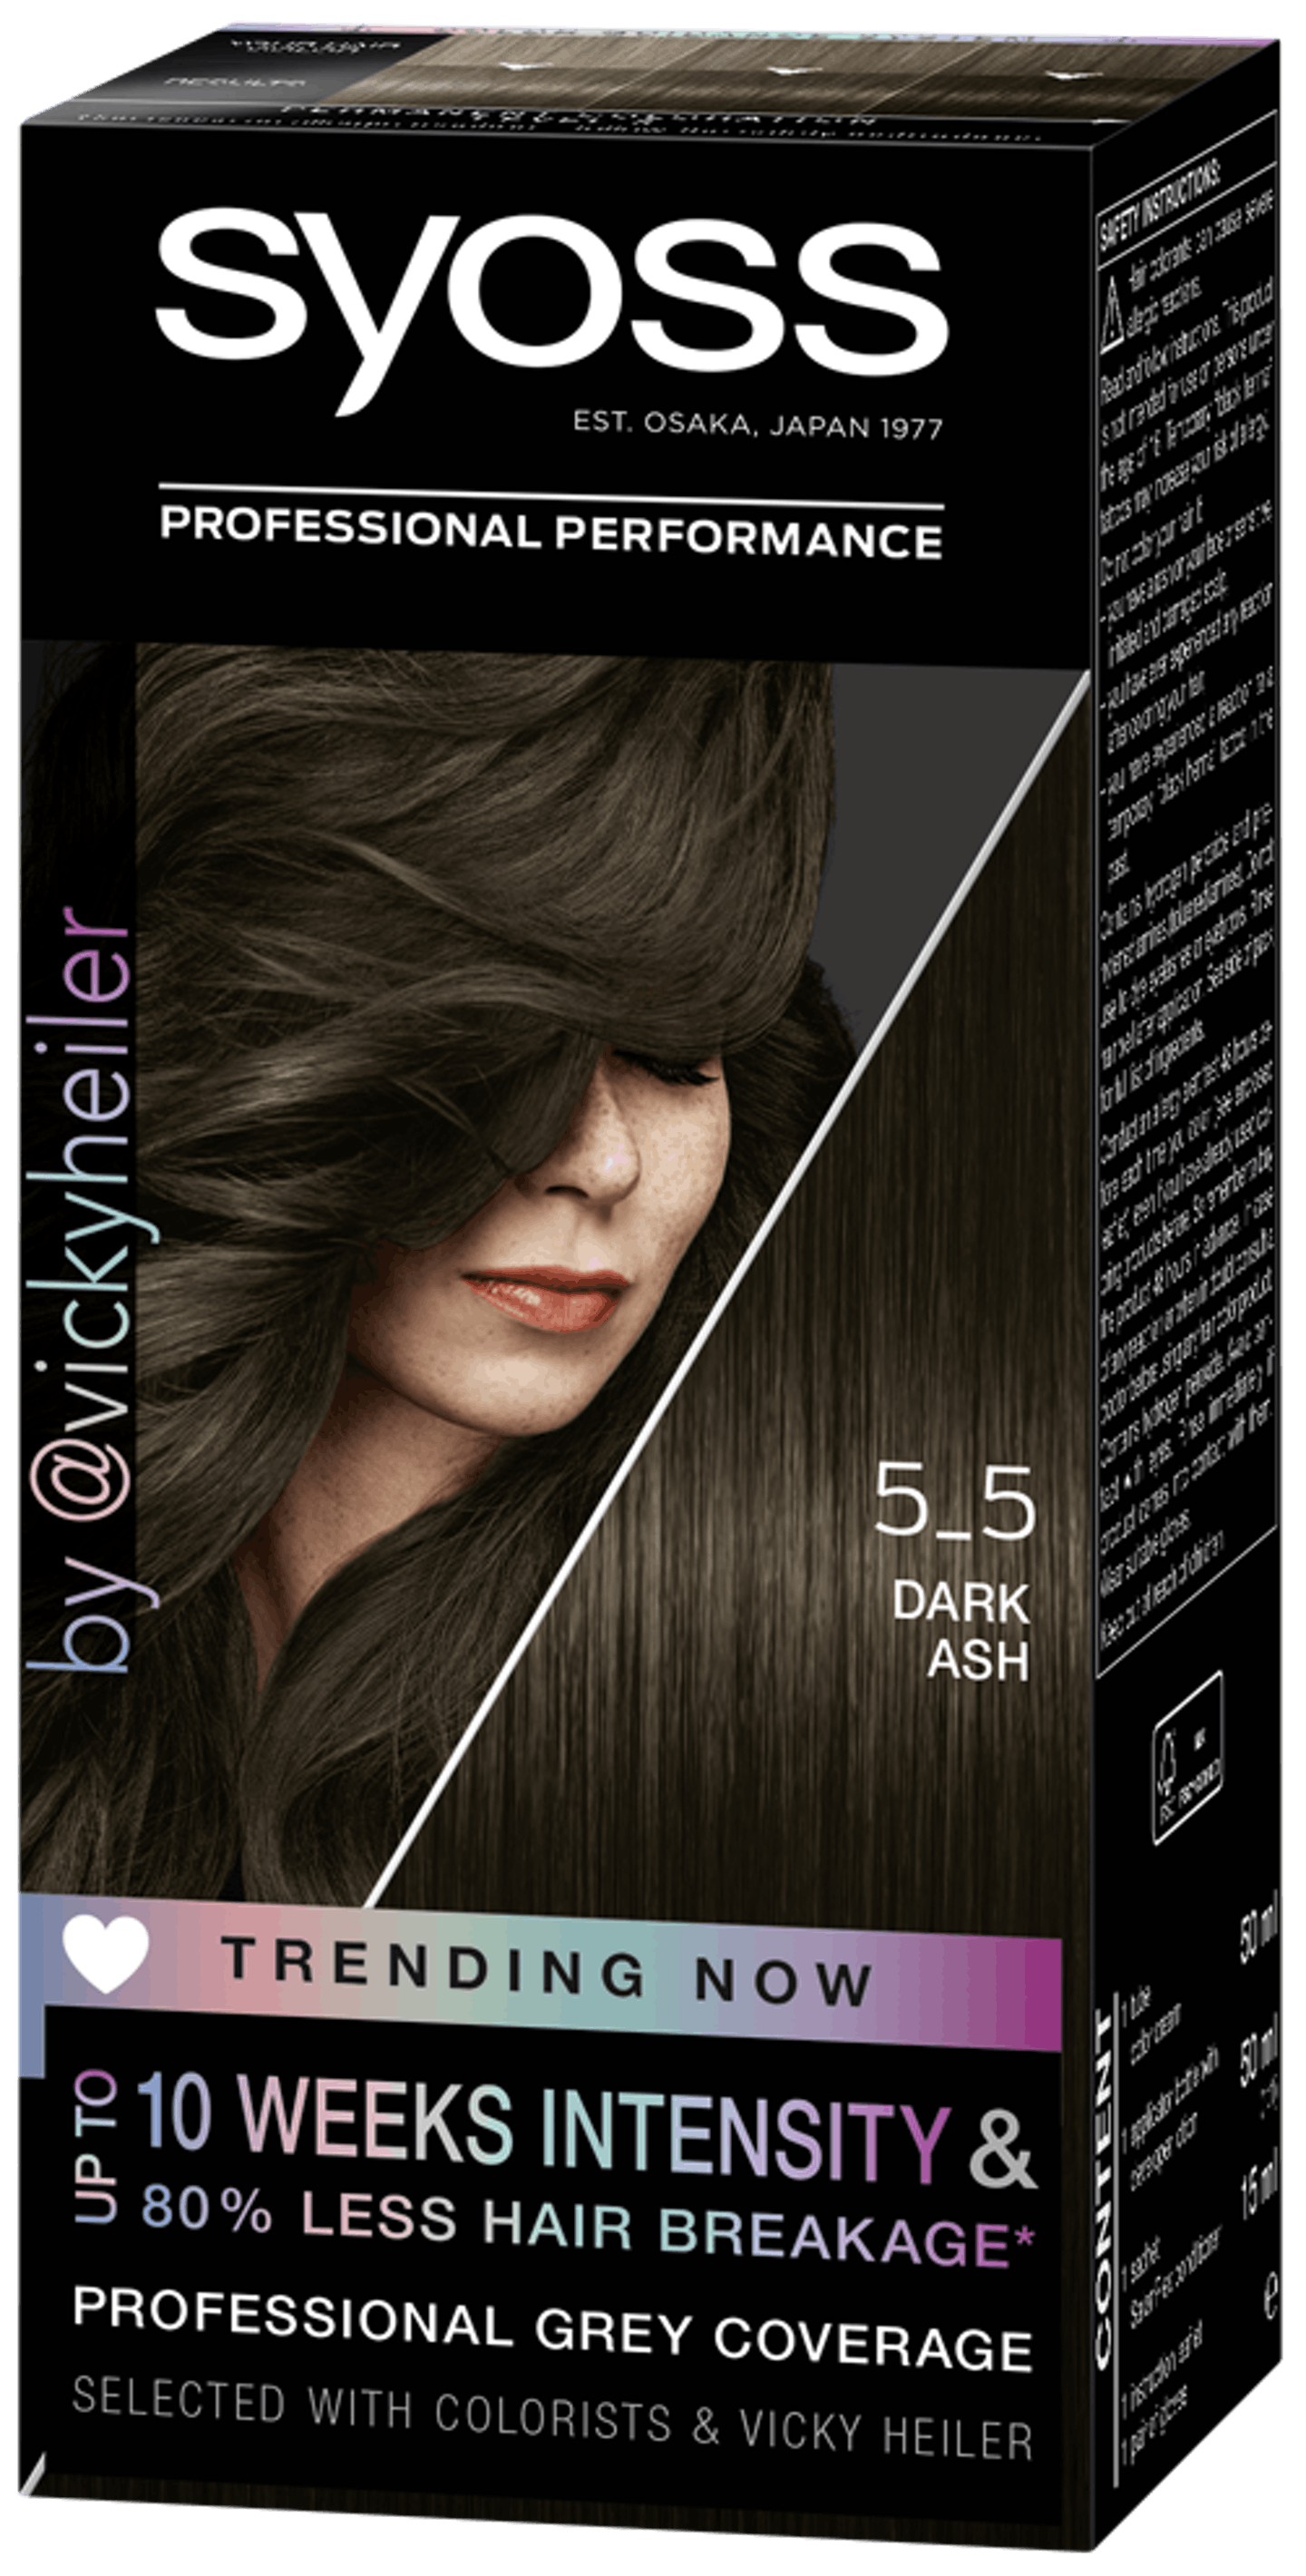 Syoss Permanent Coloration Trending Now 5_5 Dark Ash